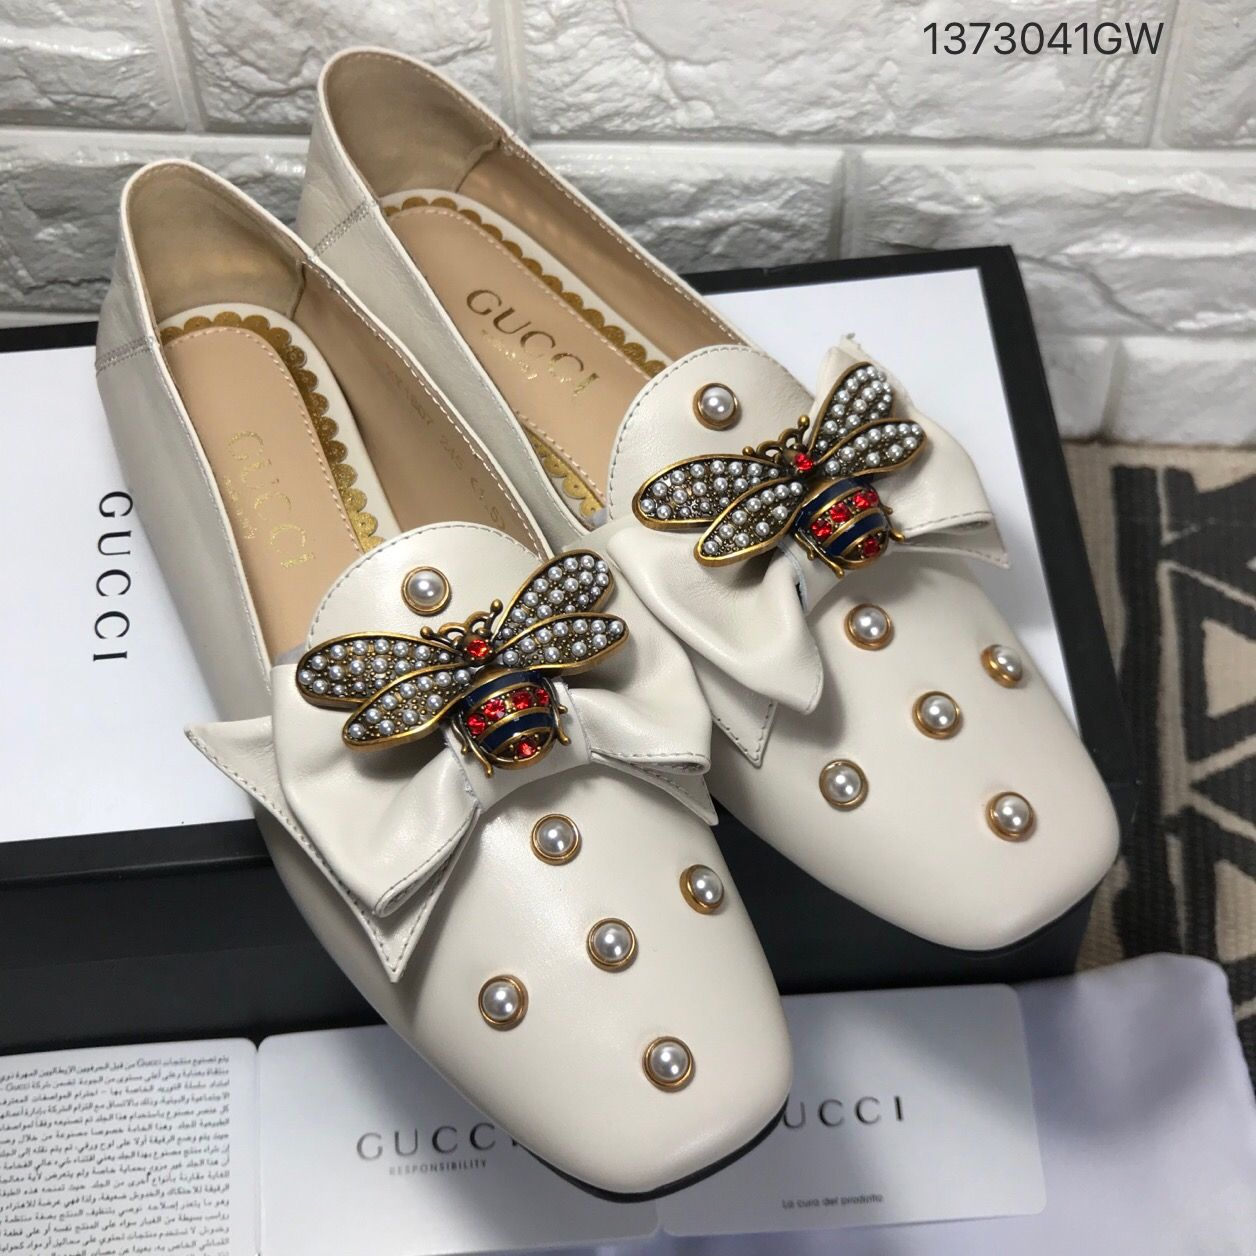 d217c7a72 Gucci woman shoes bee pearls studs flats | Shoes in 2019 | Shoes ...